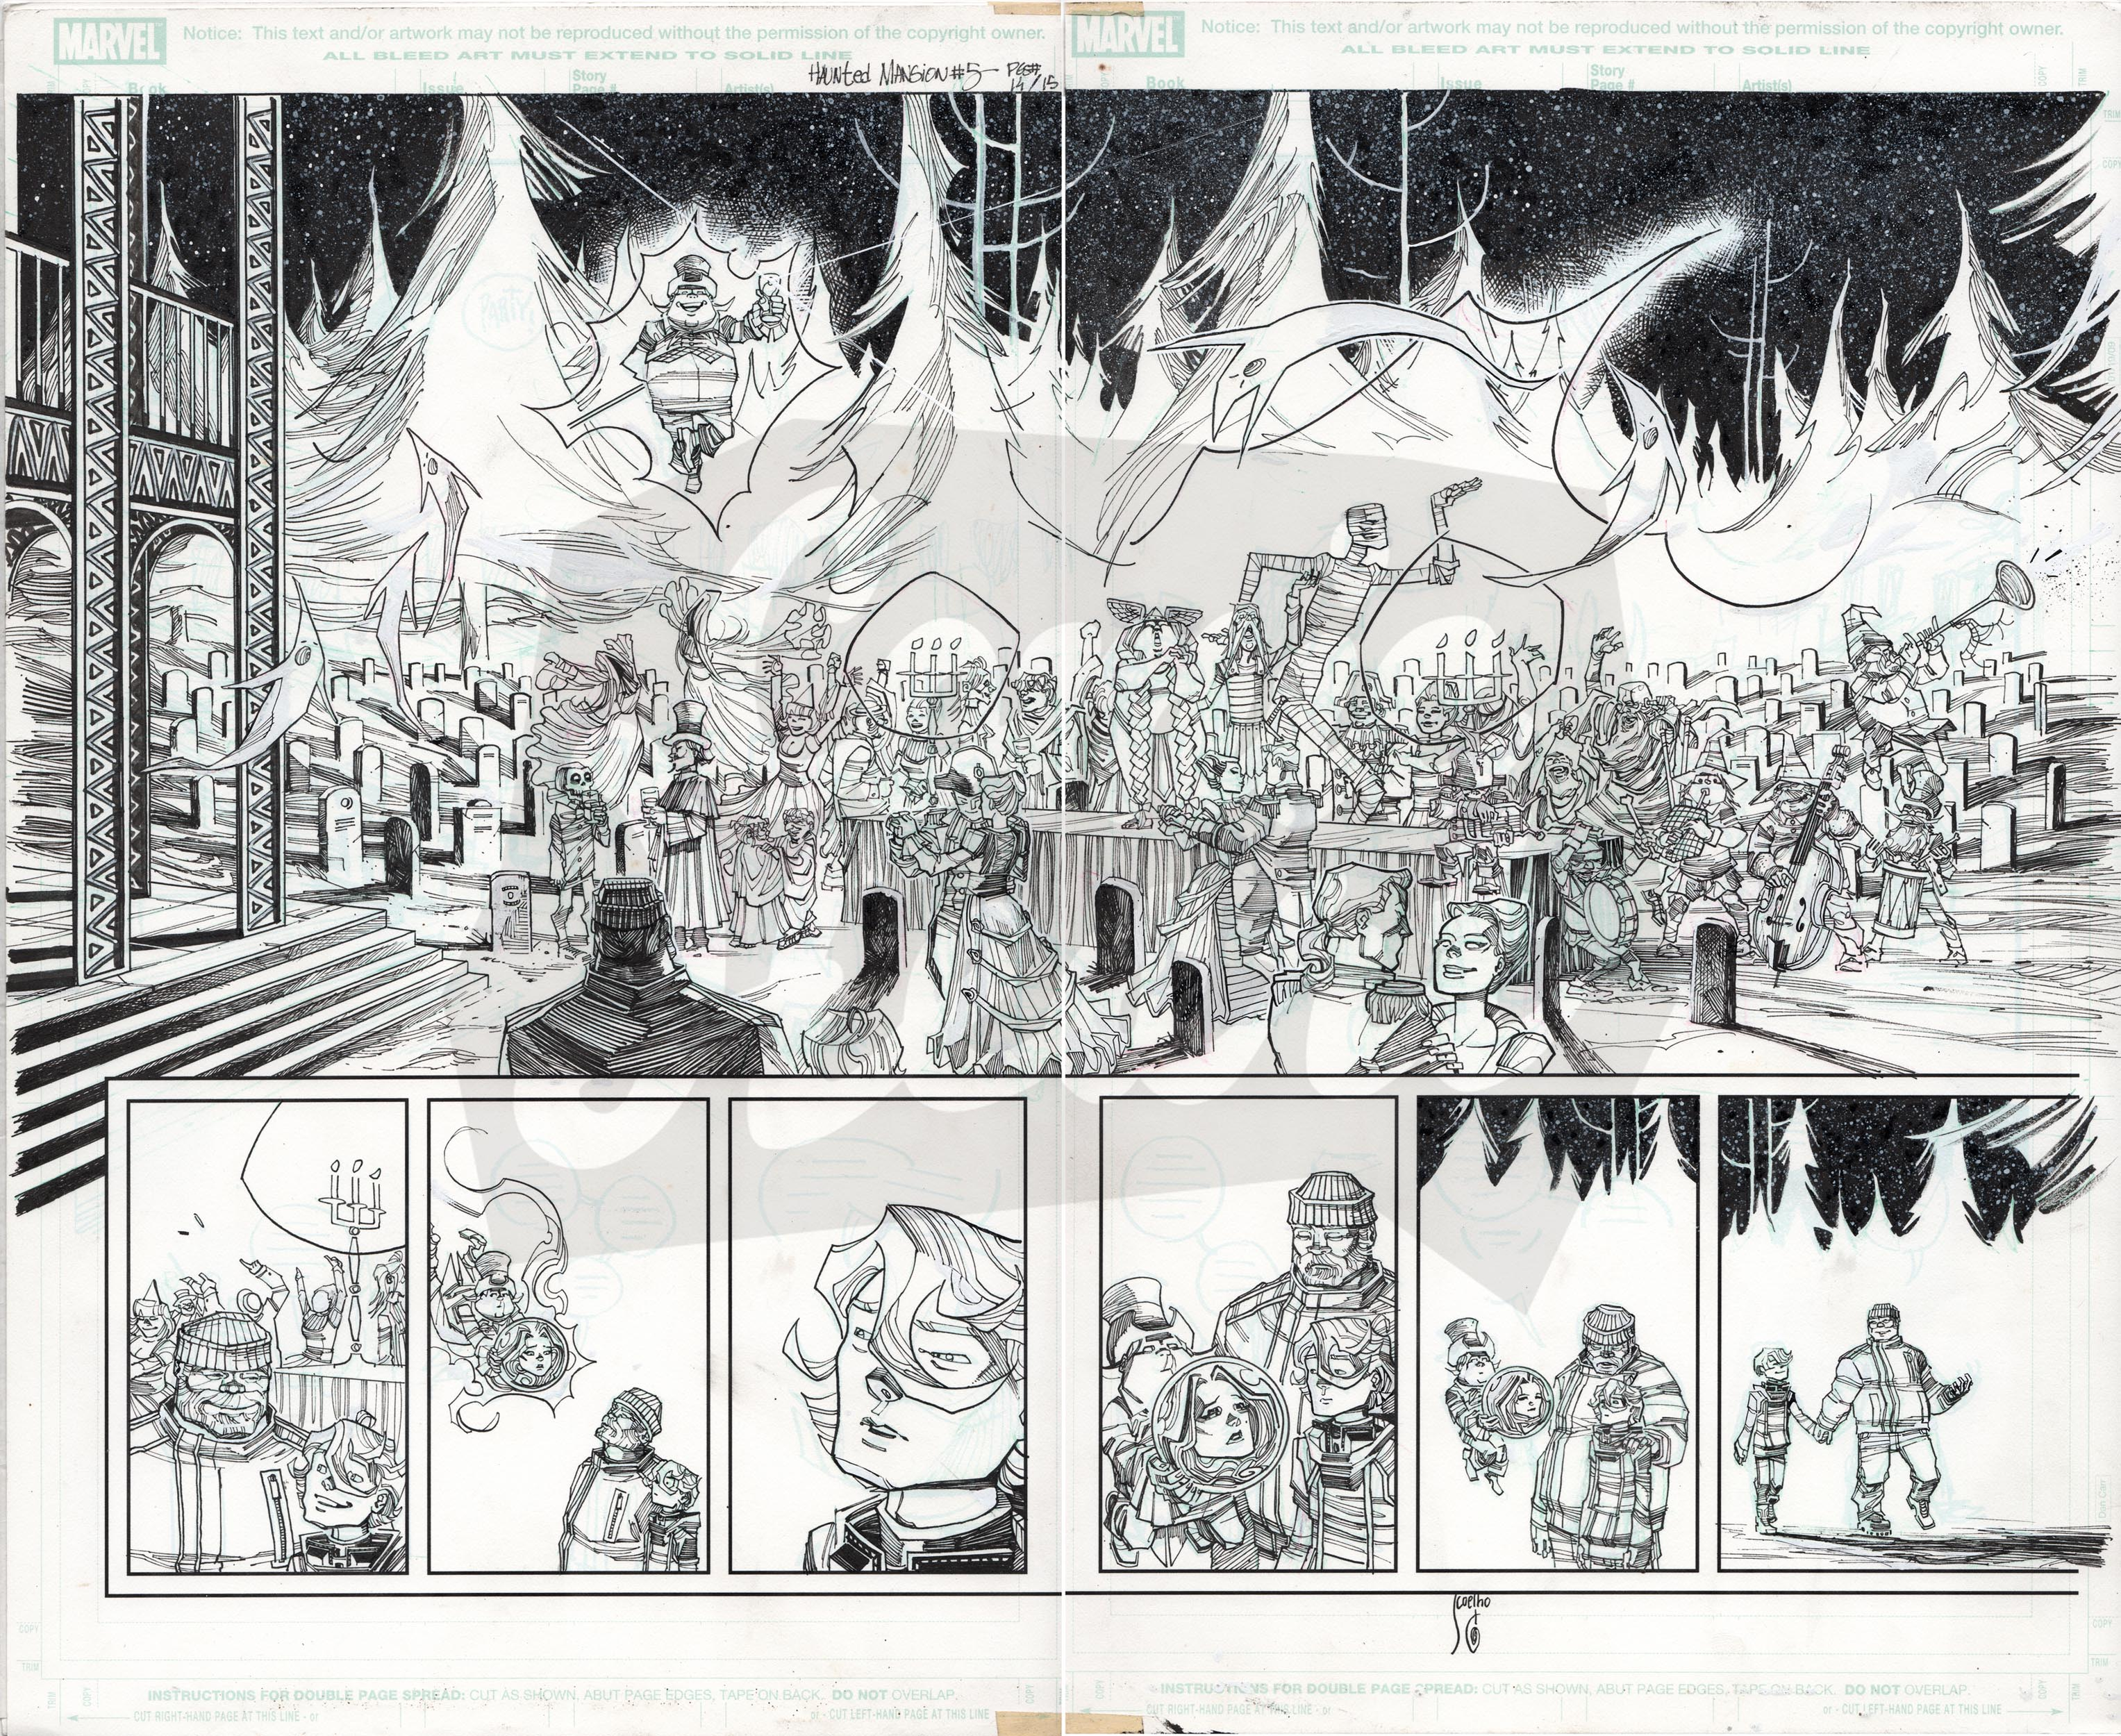 Haunted Mansion #5, Pages 14-15 (double page spread)